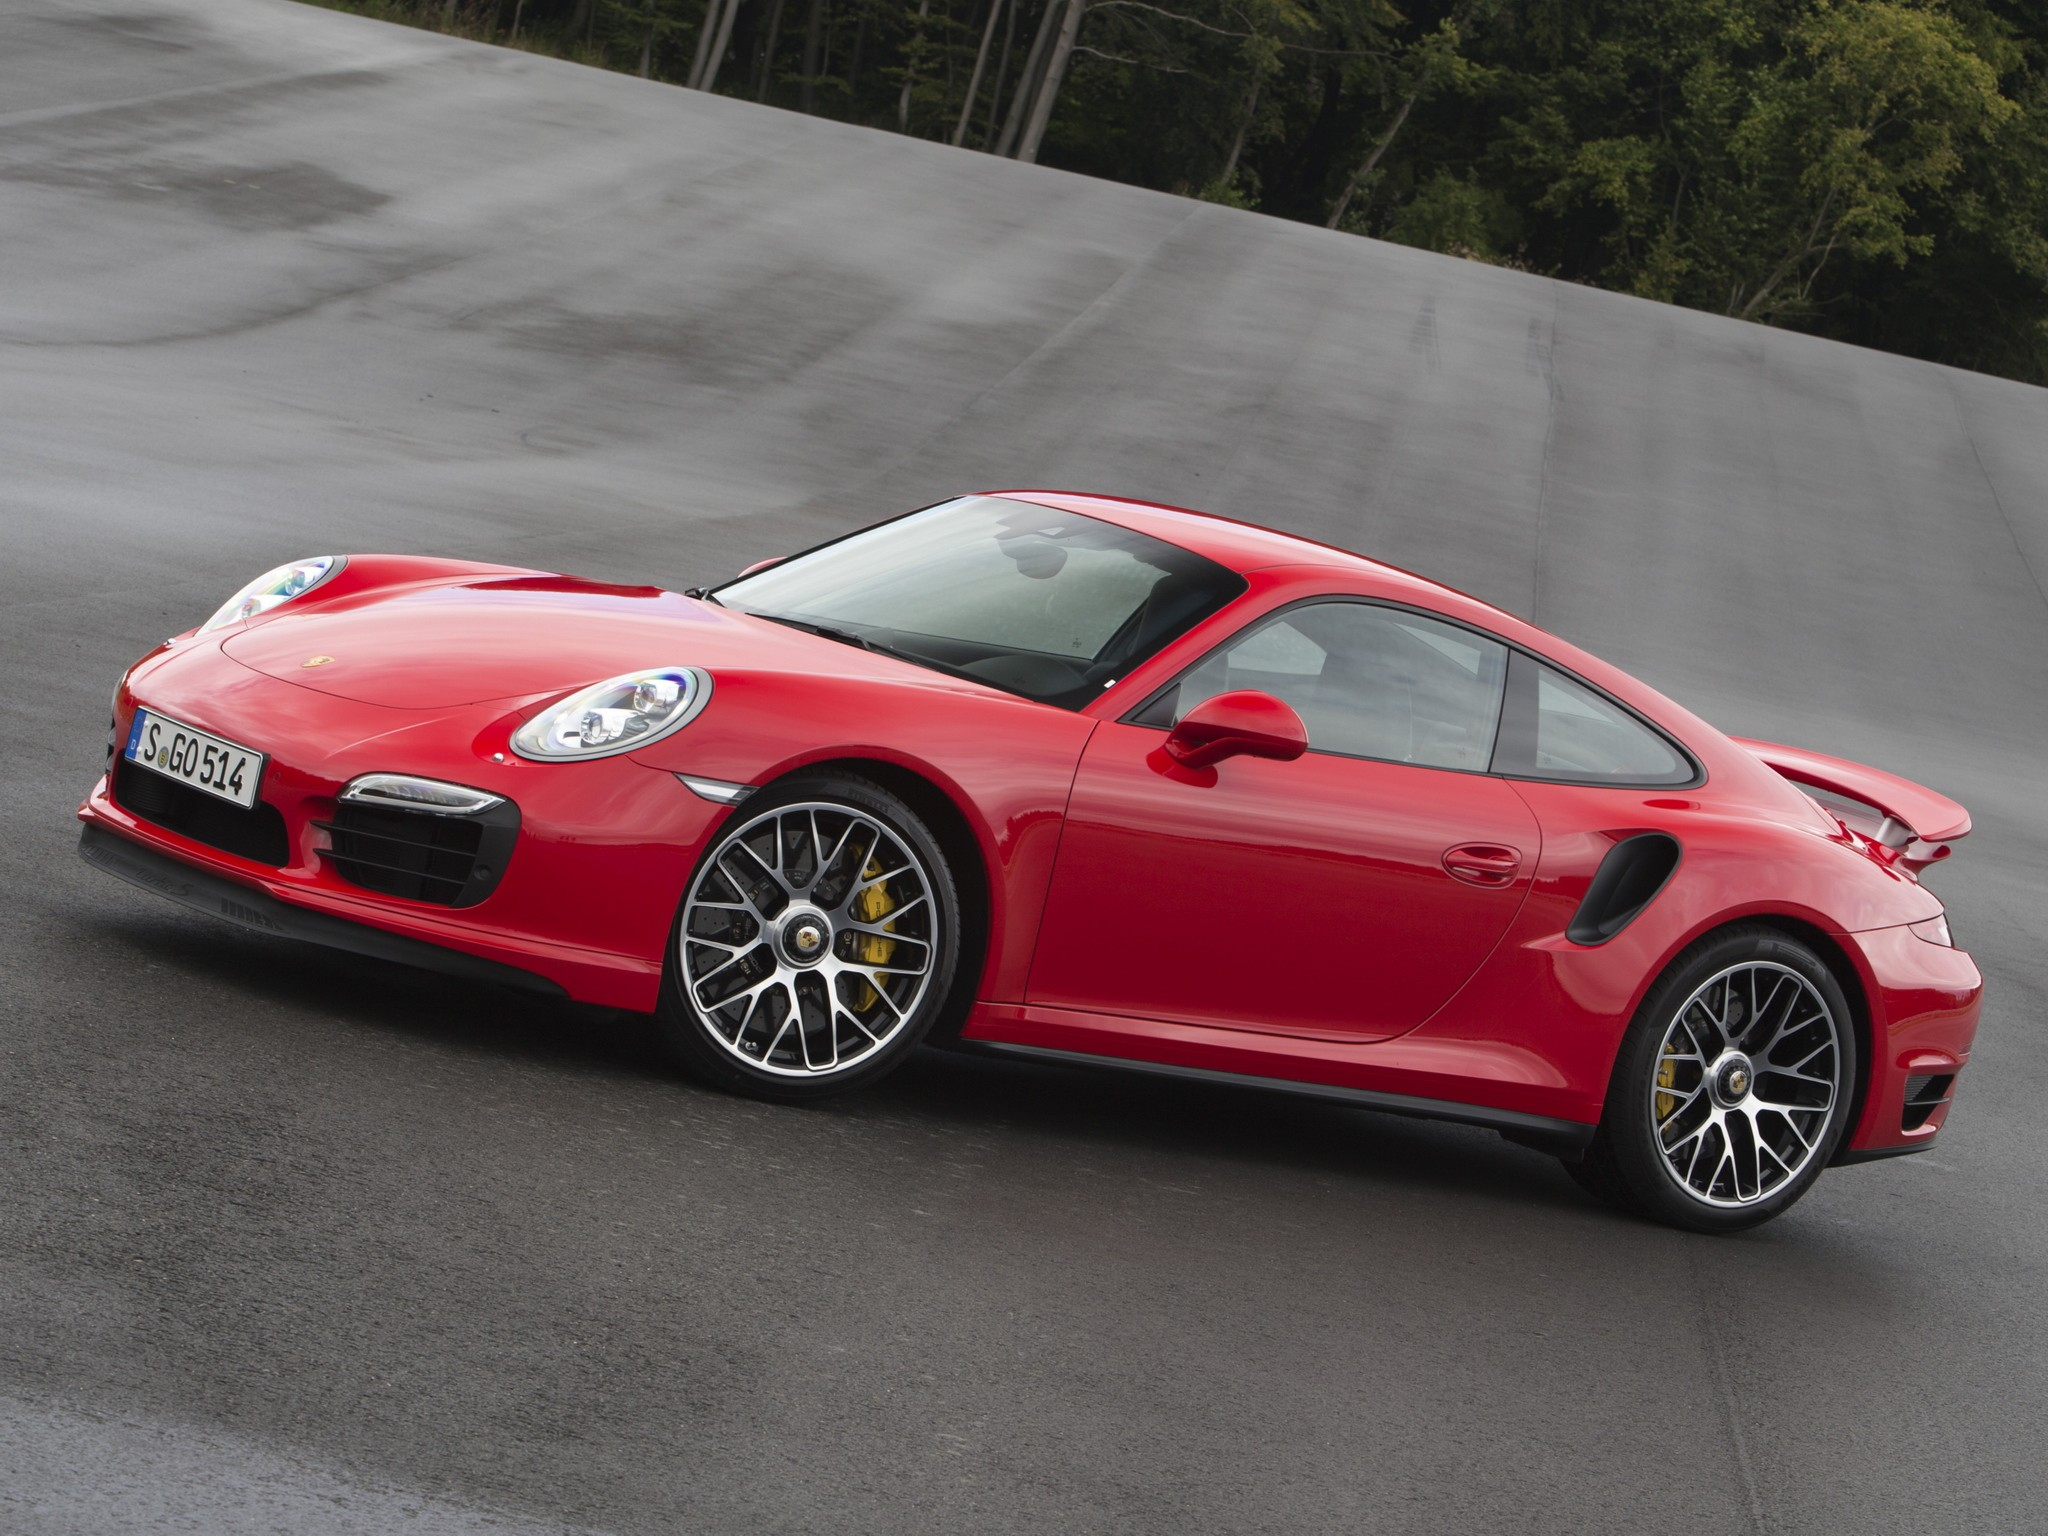 porsche 911 turbo s 991 specs 2013 2014 2015 2016 autoevolution. Black Bedroom Furniture Sets. Home Design Ideas